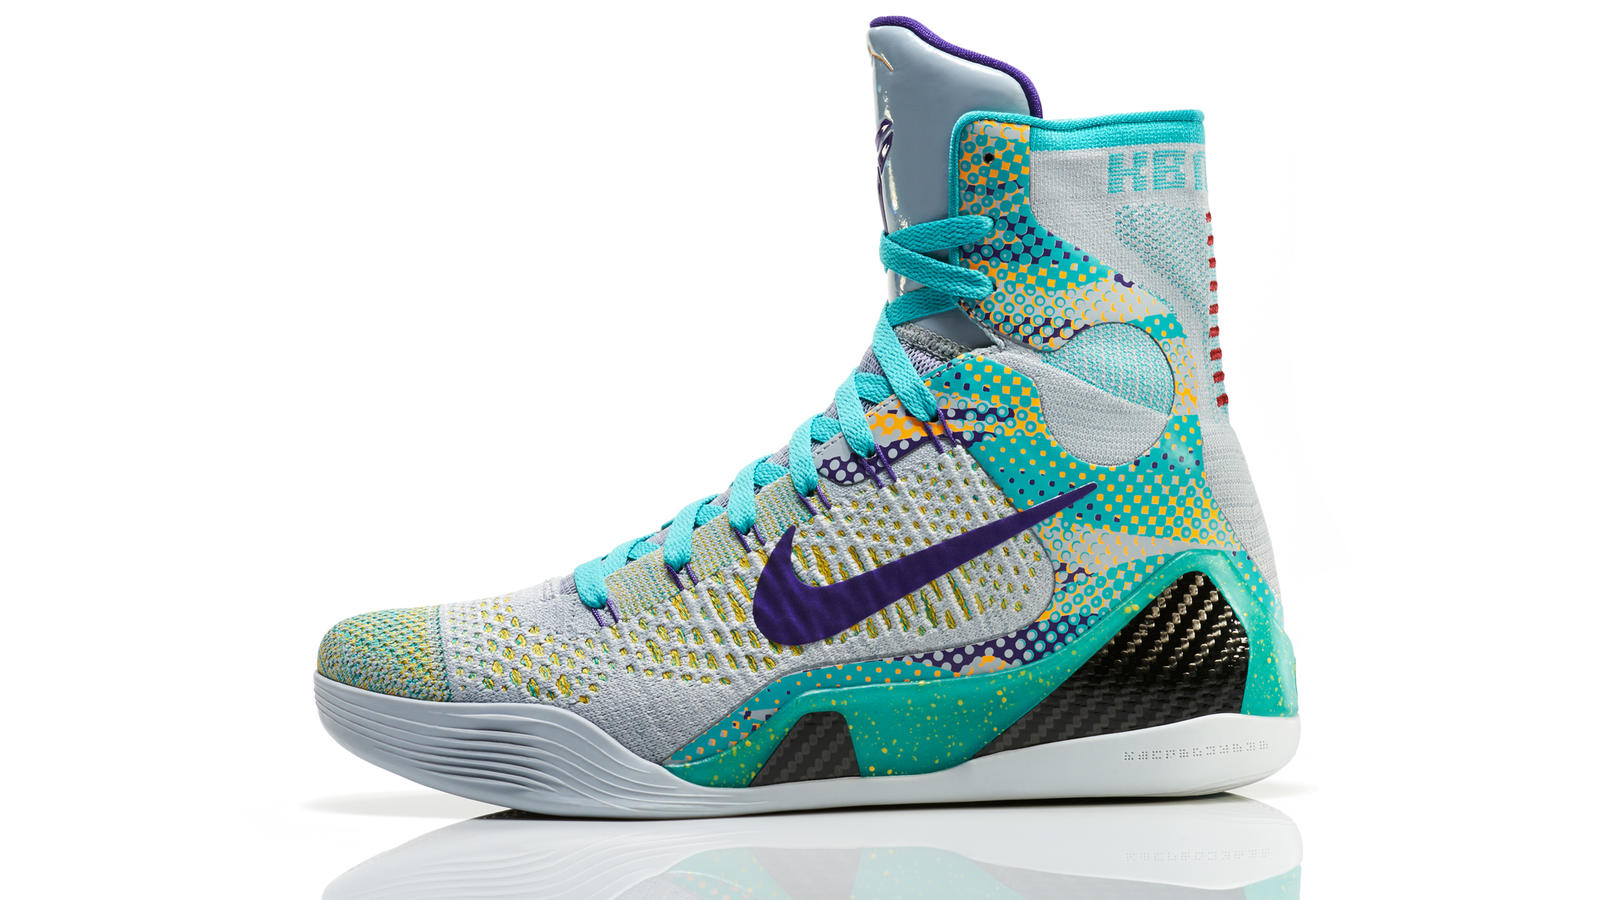 kobe9_unleashed_005_profile_16807_fb